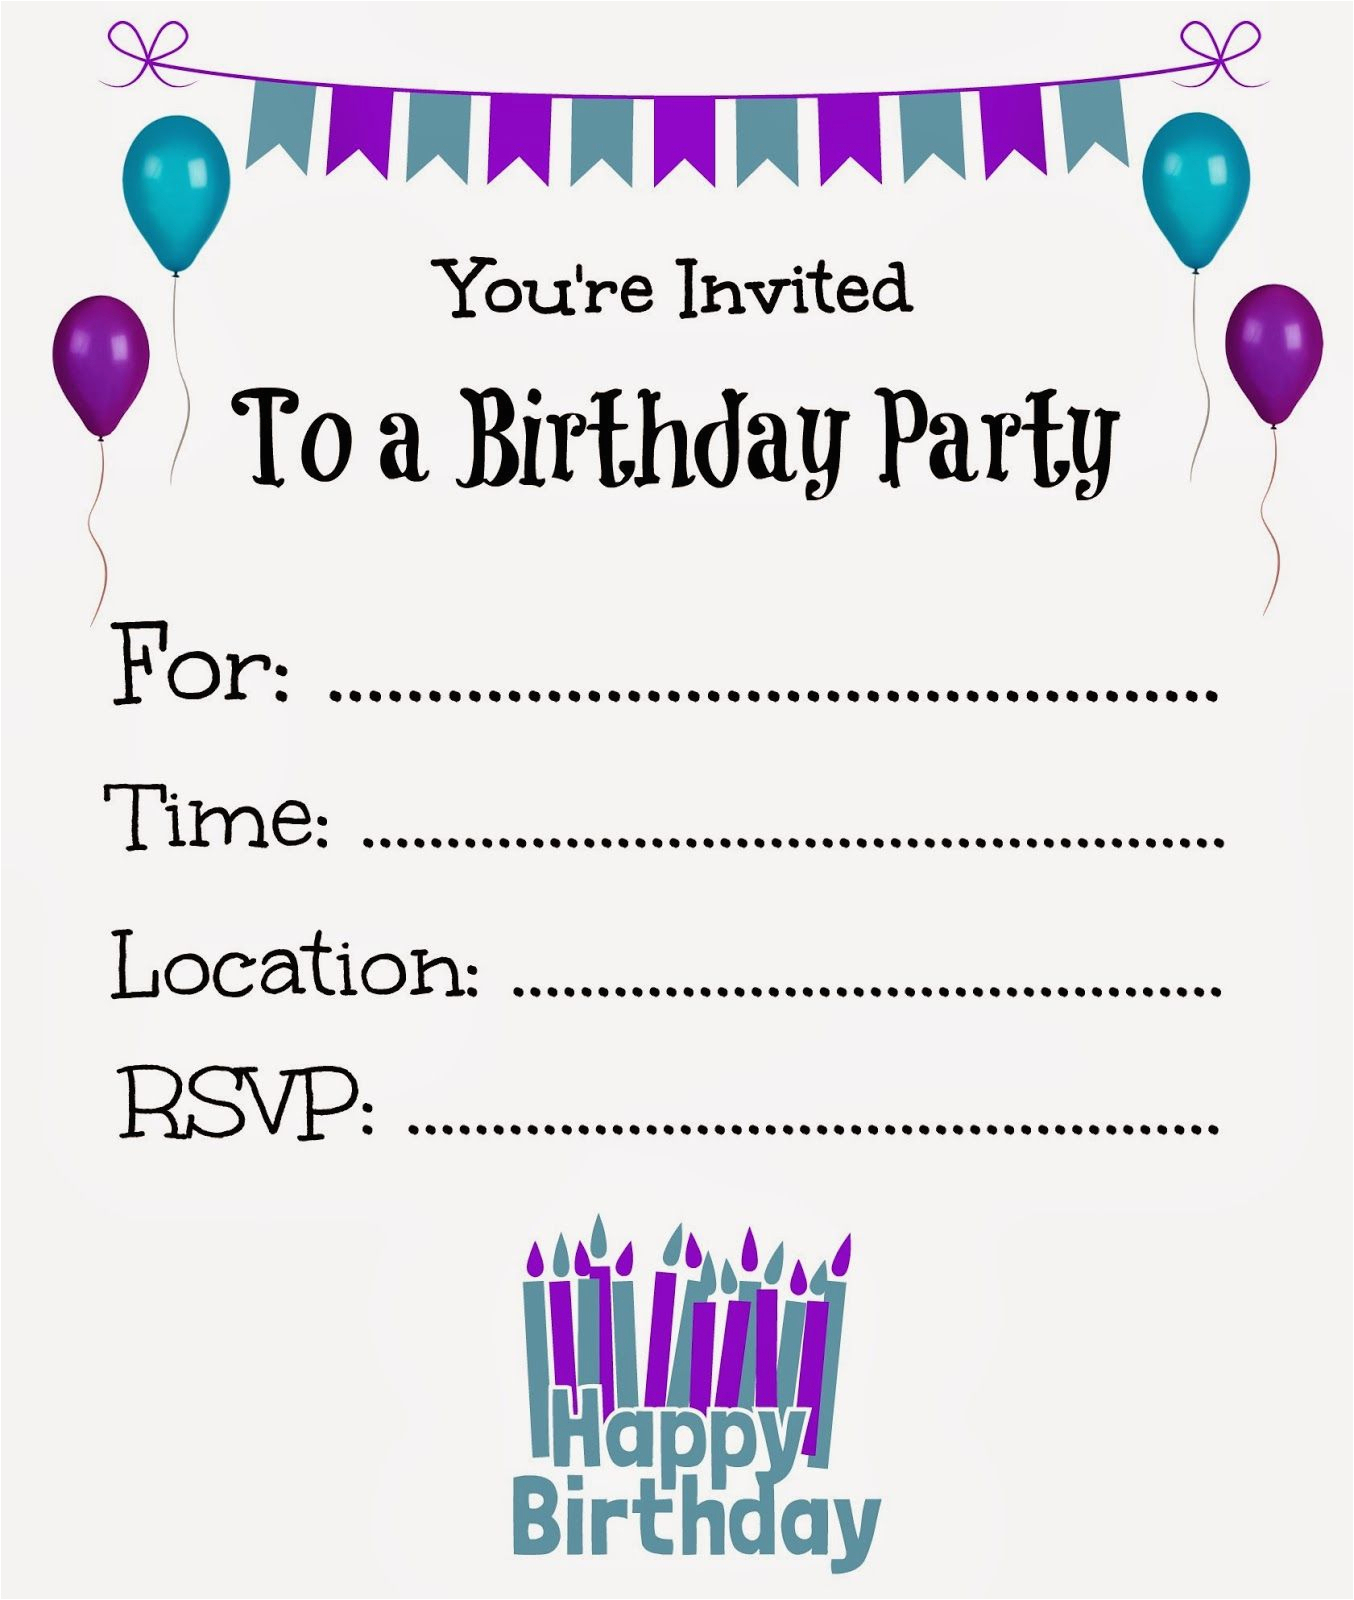 Printable Children S Birthday Party Invitations   Birthdaybuzz - Free Printable Birthday Party Invitations With Photo